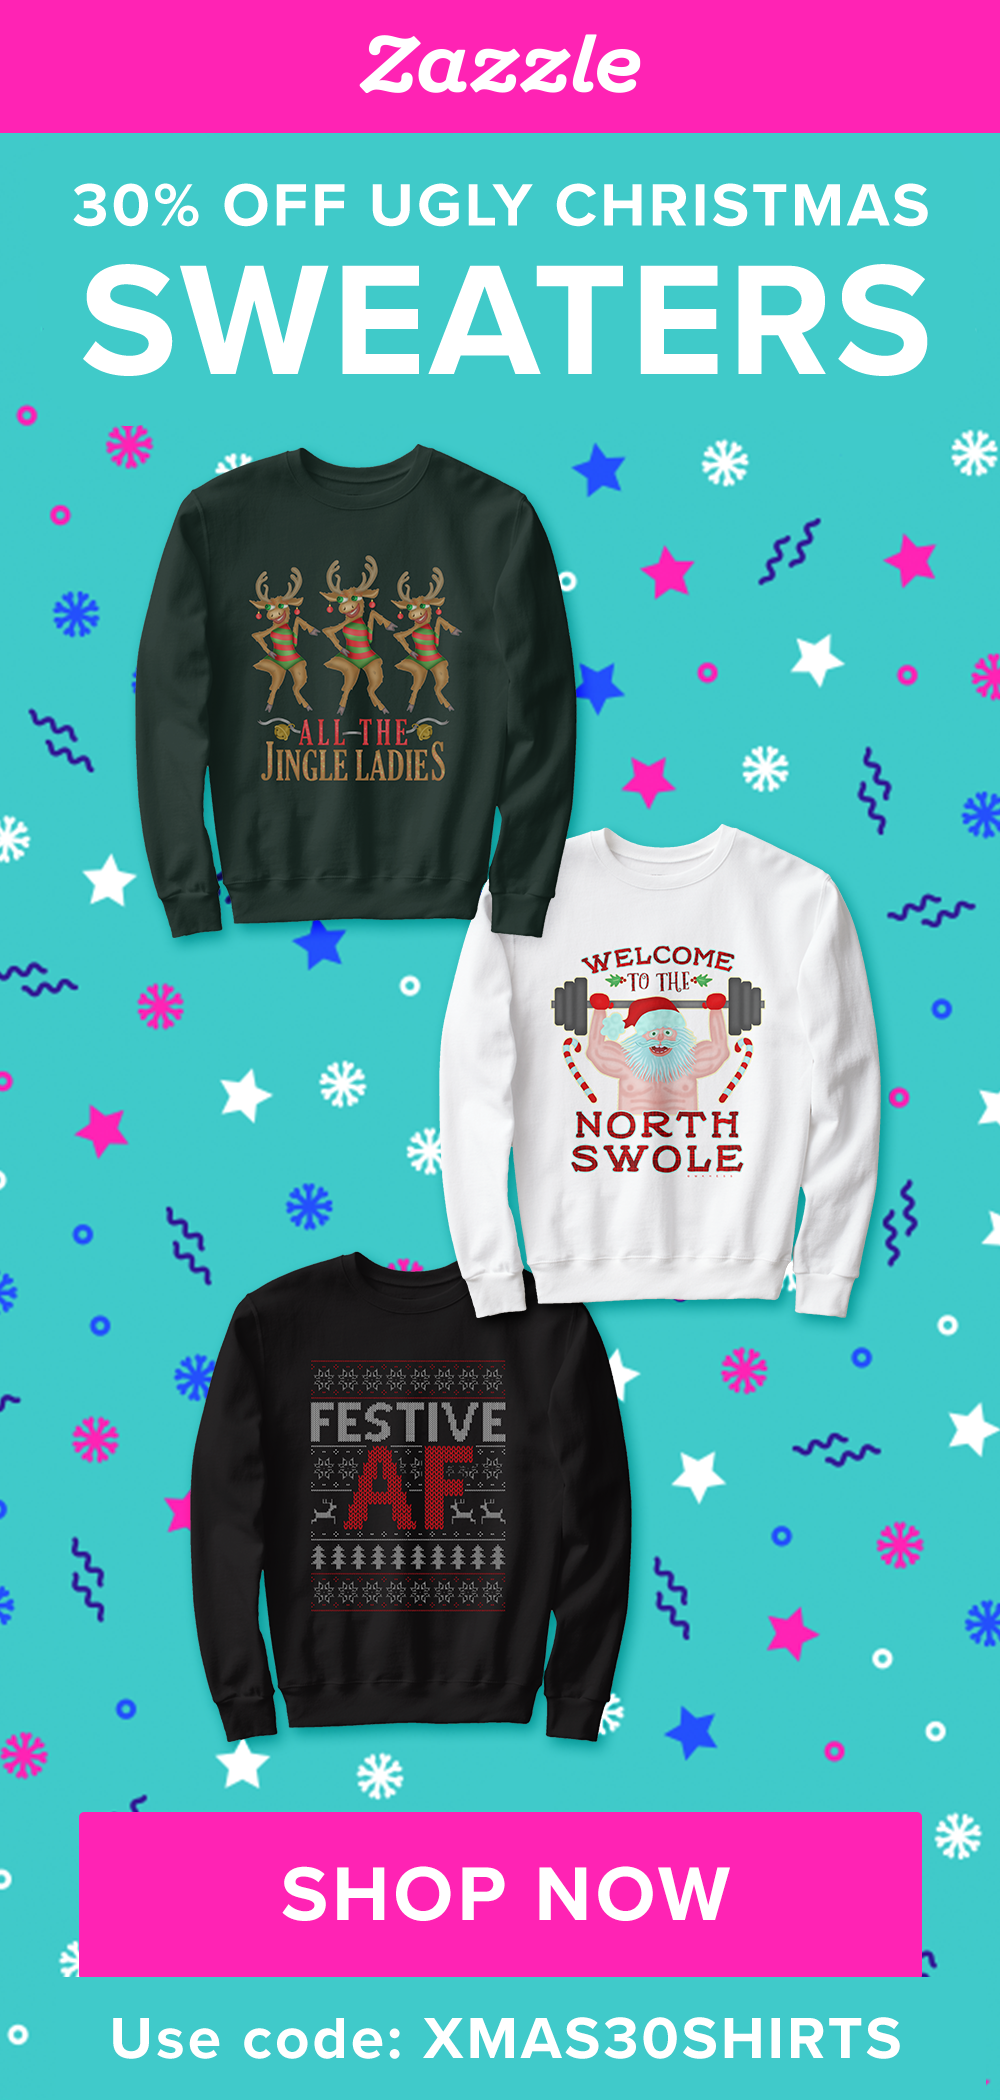 Get 30% off Ugly Christmas Sweaters now through Sunday, November 15 with code XMAS30SHIRTS. Choose from hundreds of designs including funny, cute, or political designs.